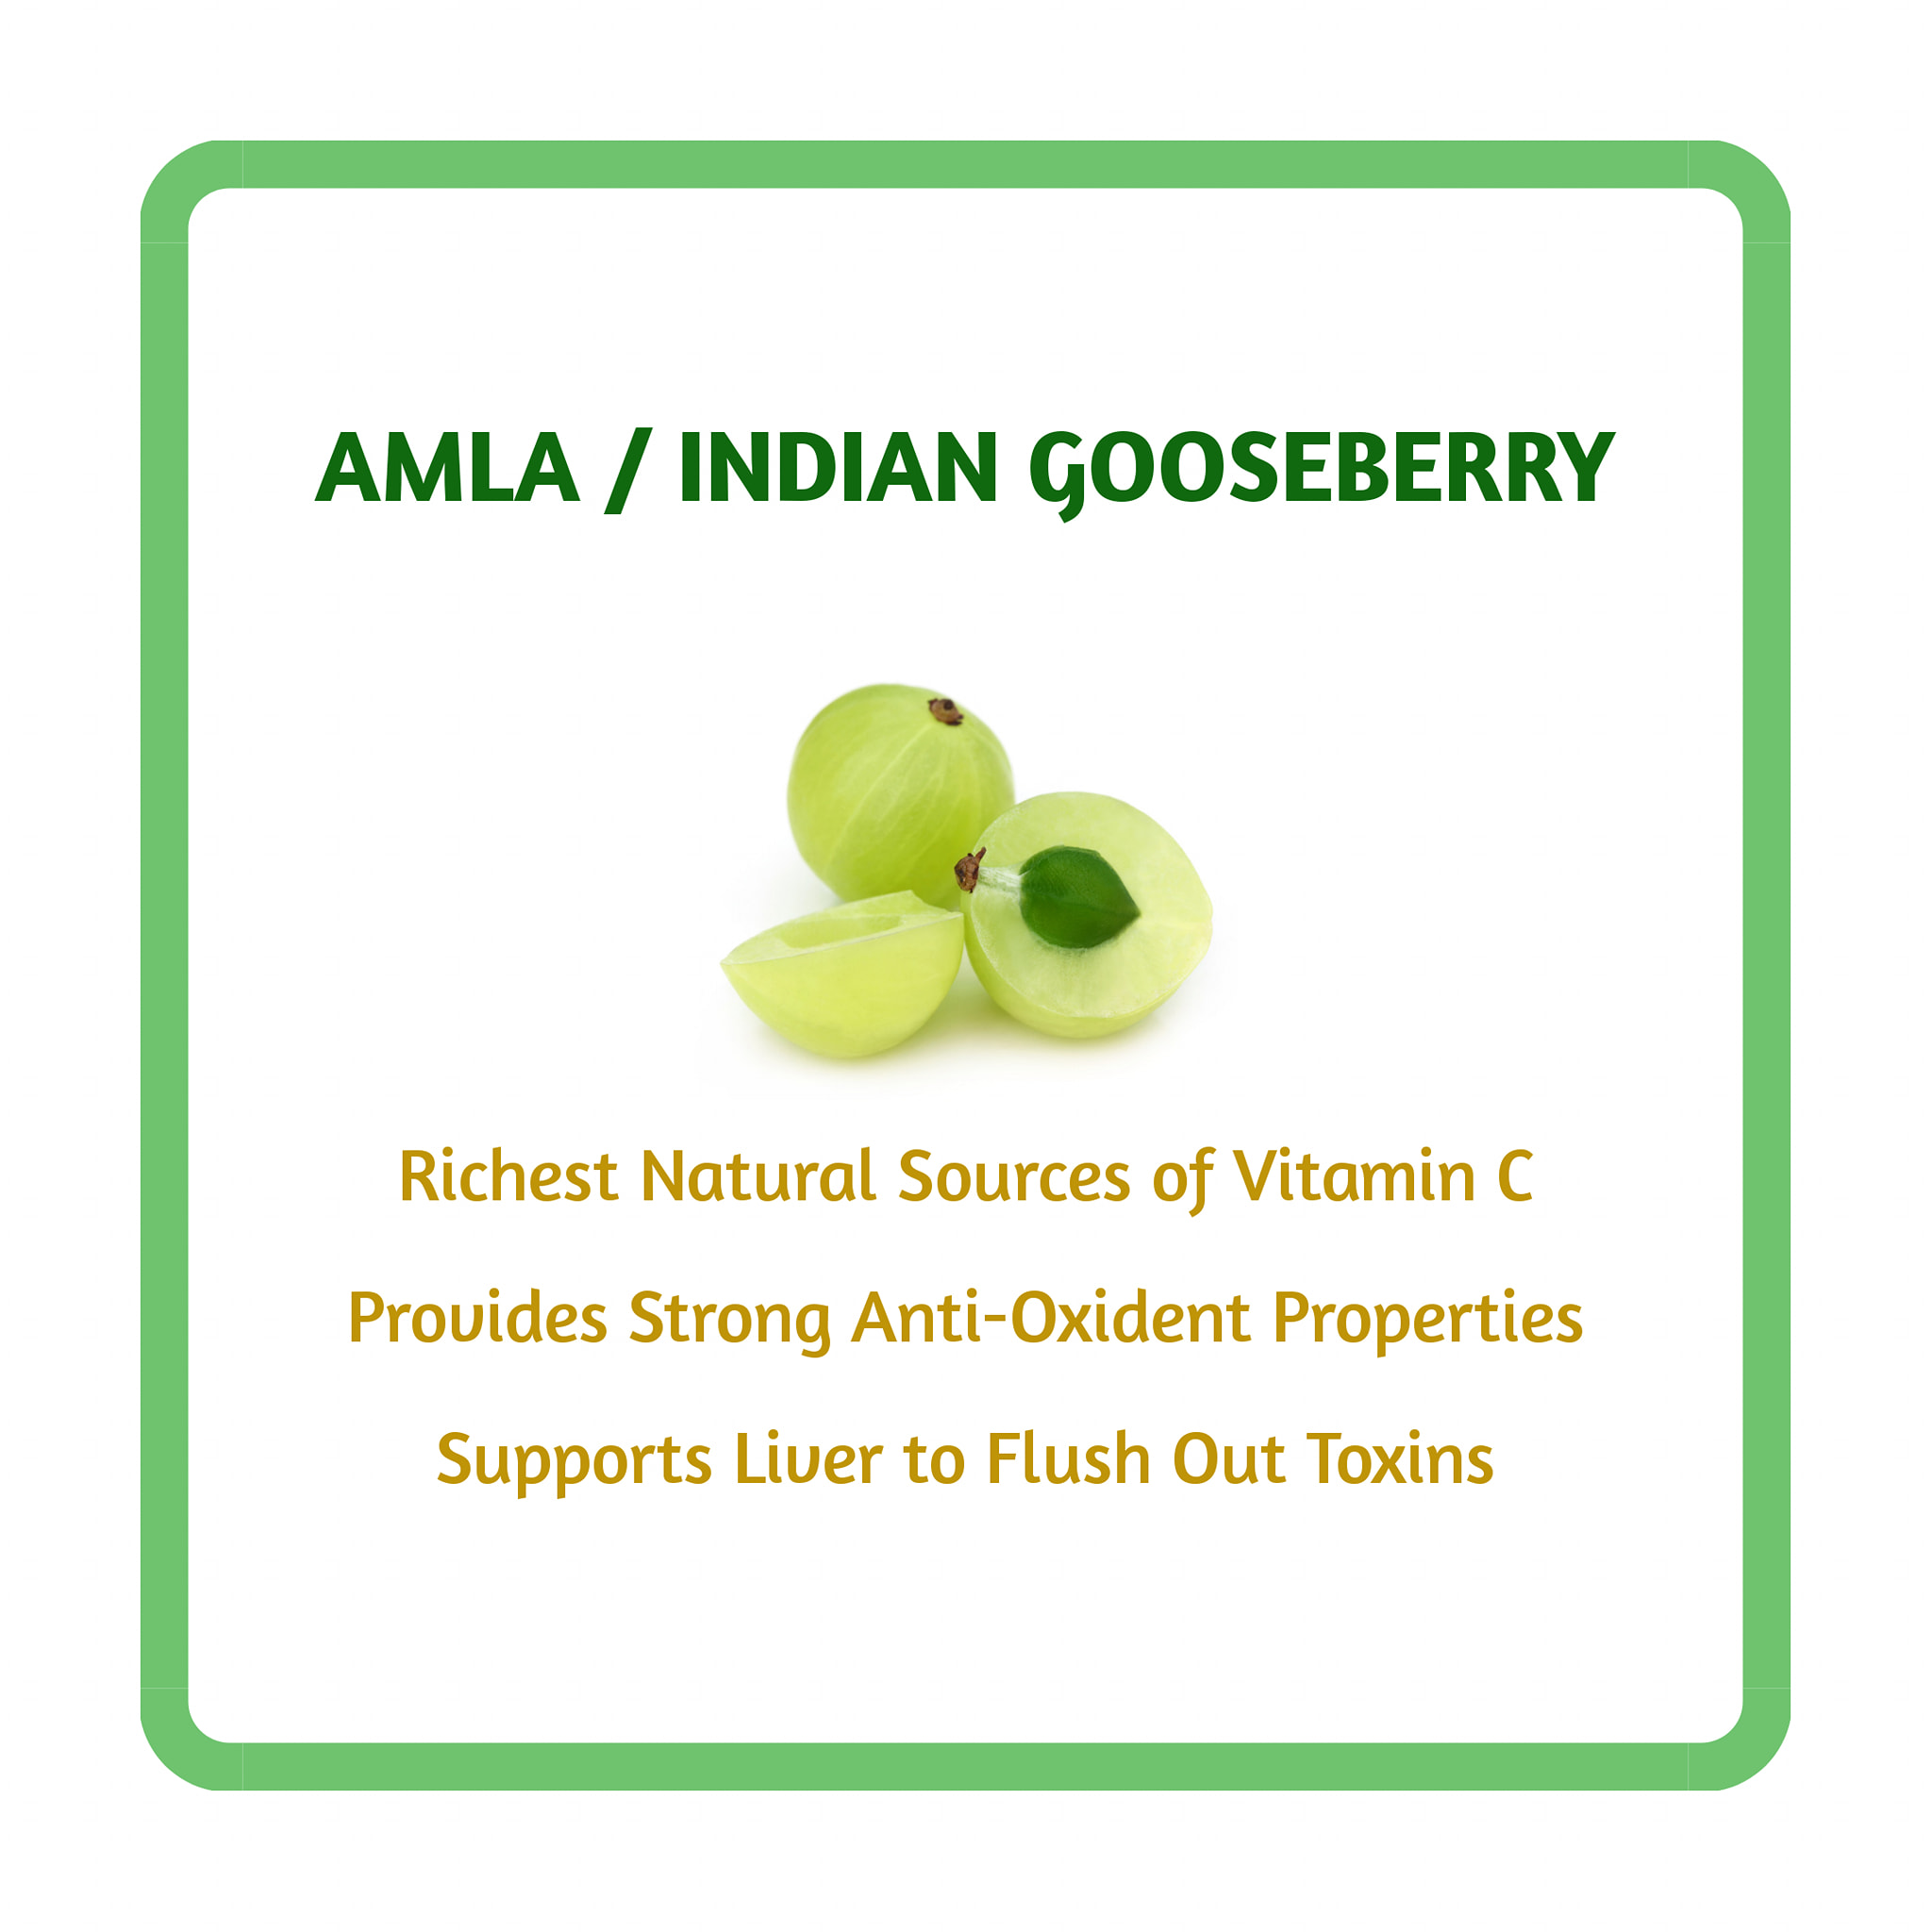 Indian gooseberry rich source of vitamin c and anti oxidants